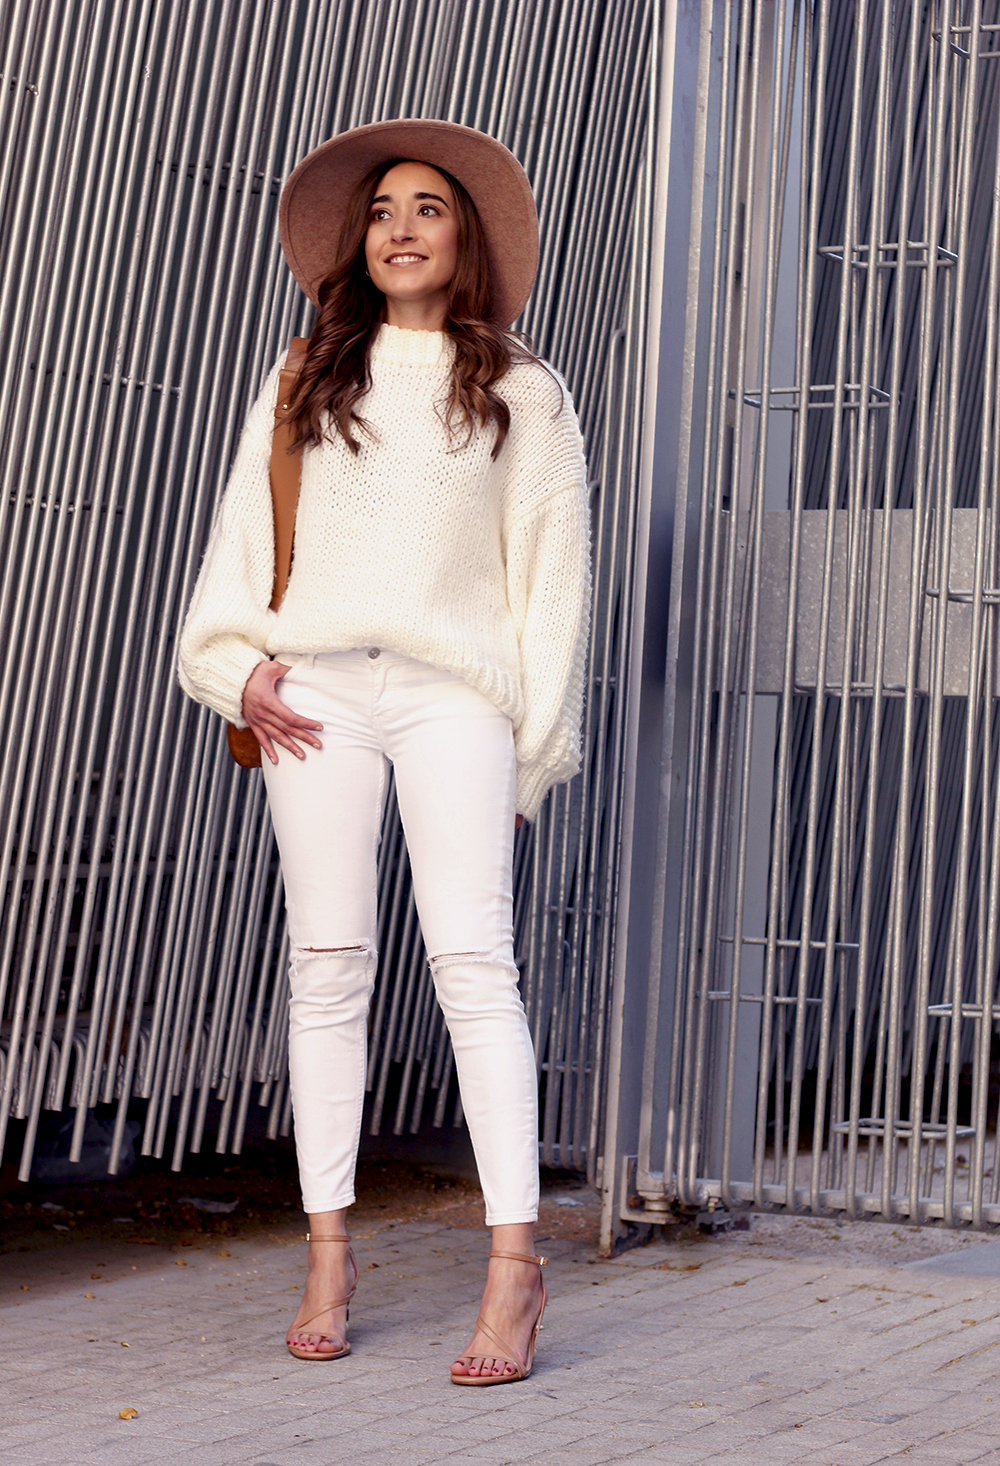 white outfit  beige hat beige bag street style casual outfit 20193